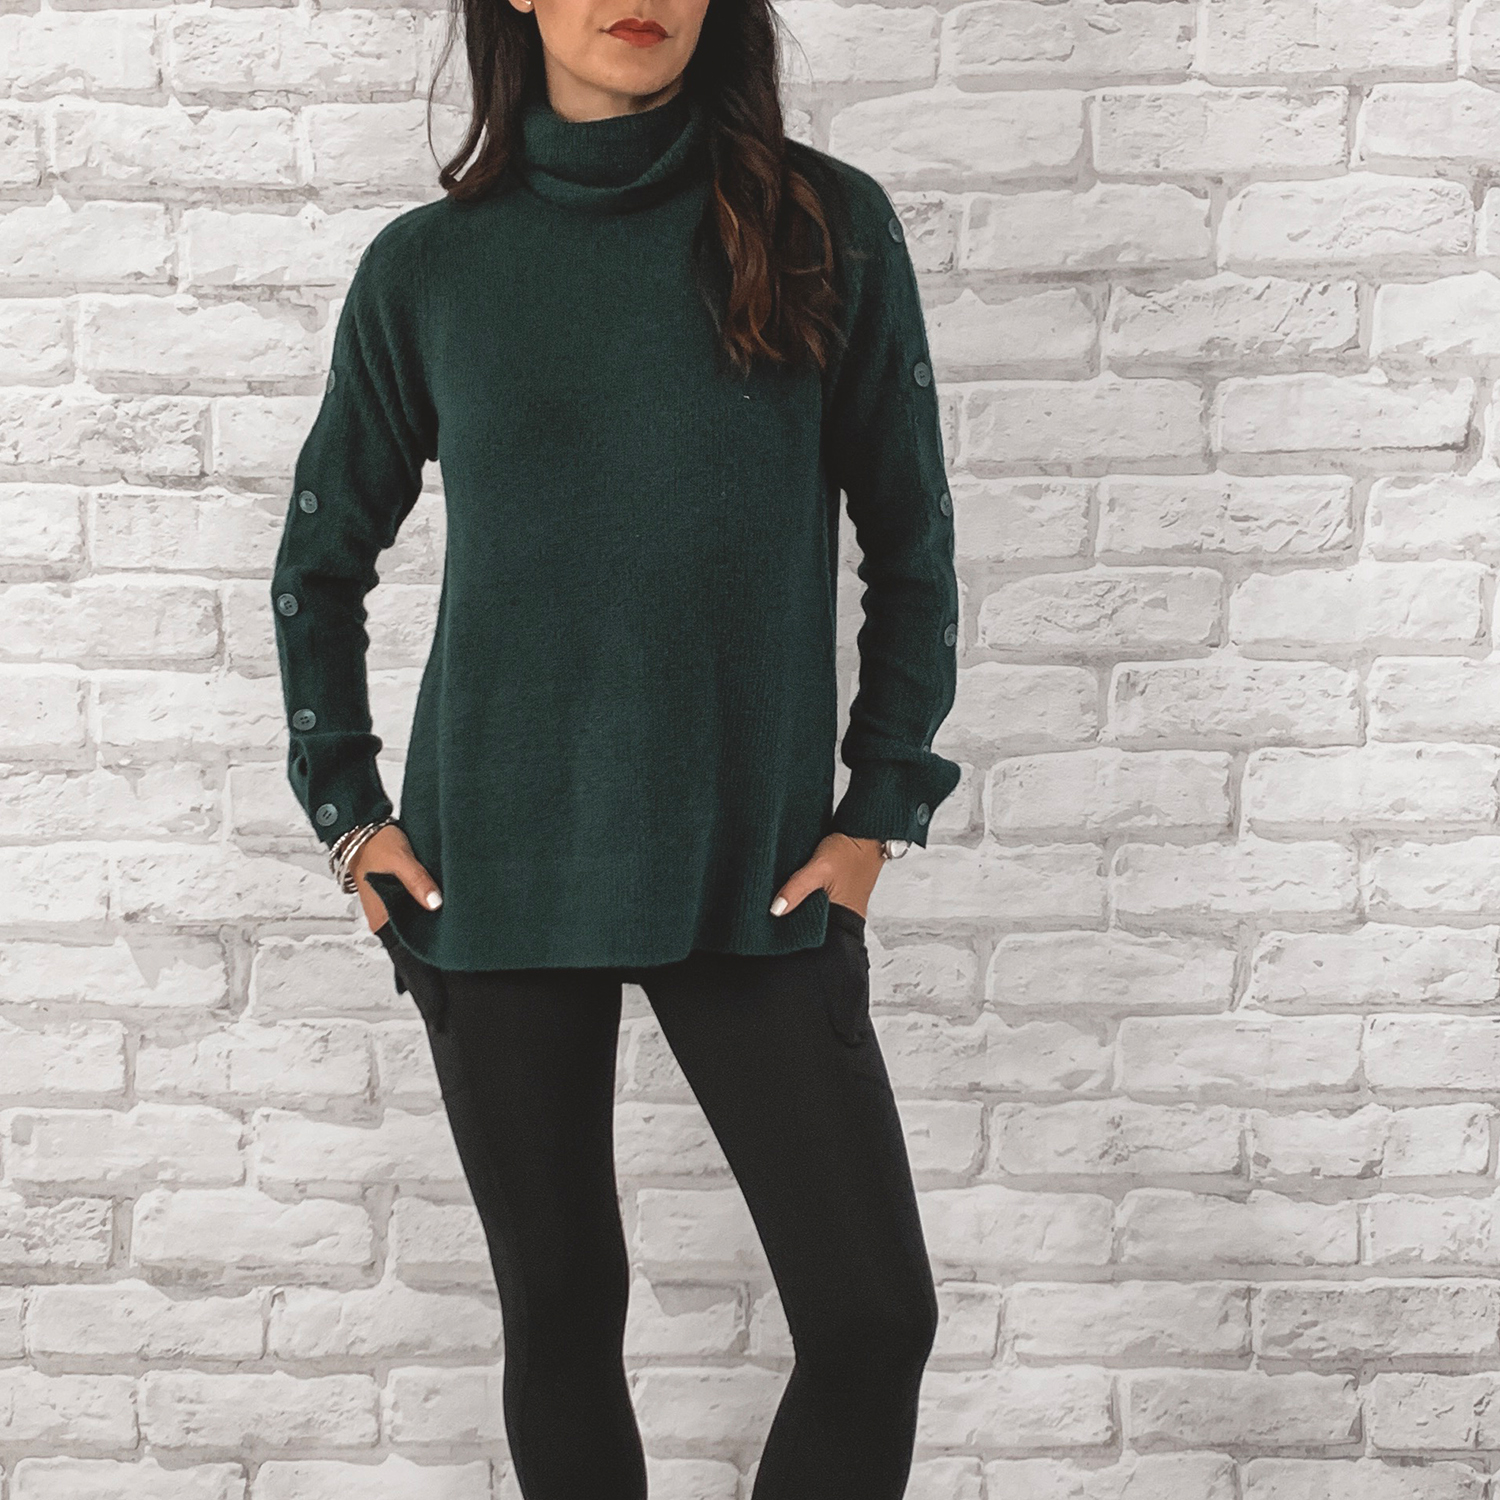 — OUTFIT DETAILS —    Halogen Button Sleeve Sweater      {Anniversary Price: $49.90 | After Sale: $79.00 | Wearing: Extra Small}  |     Alexo Athletica Stealth Leggings      — CCW DETAILS —    Alexo Athletica Stealth Leggings     | Glock 43